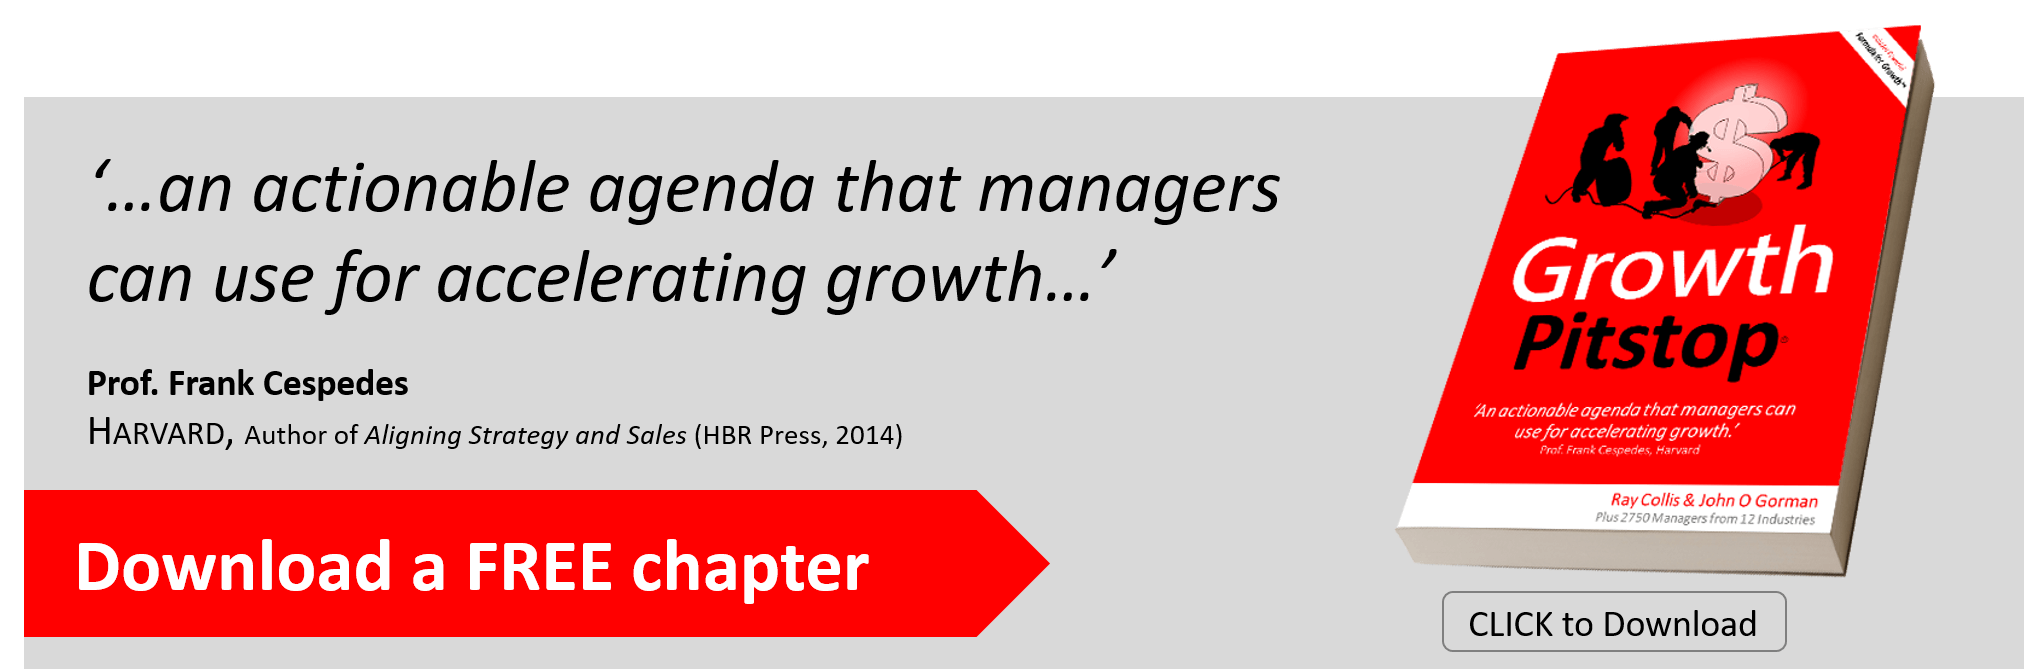 growth pitstop book free chapters